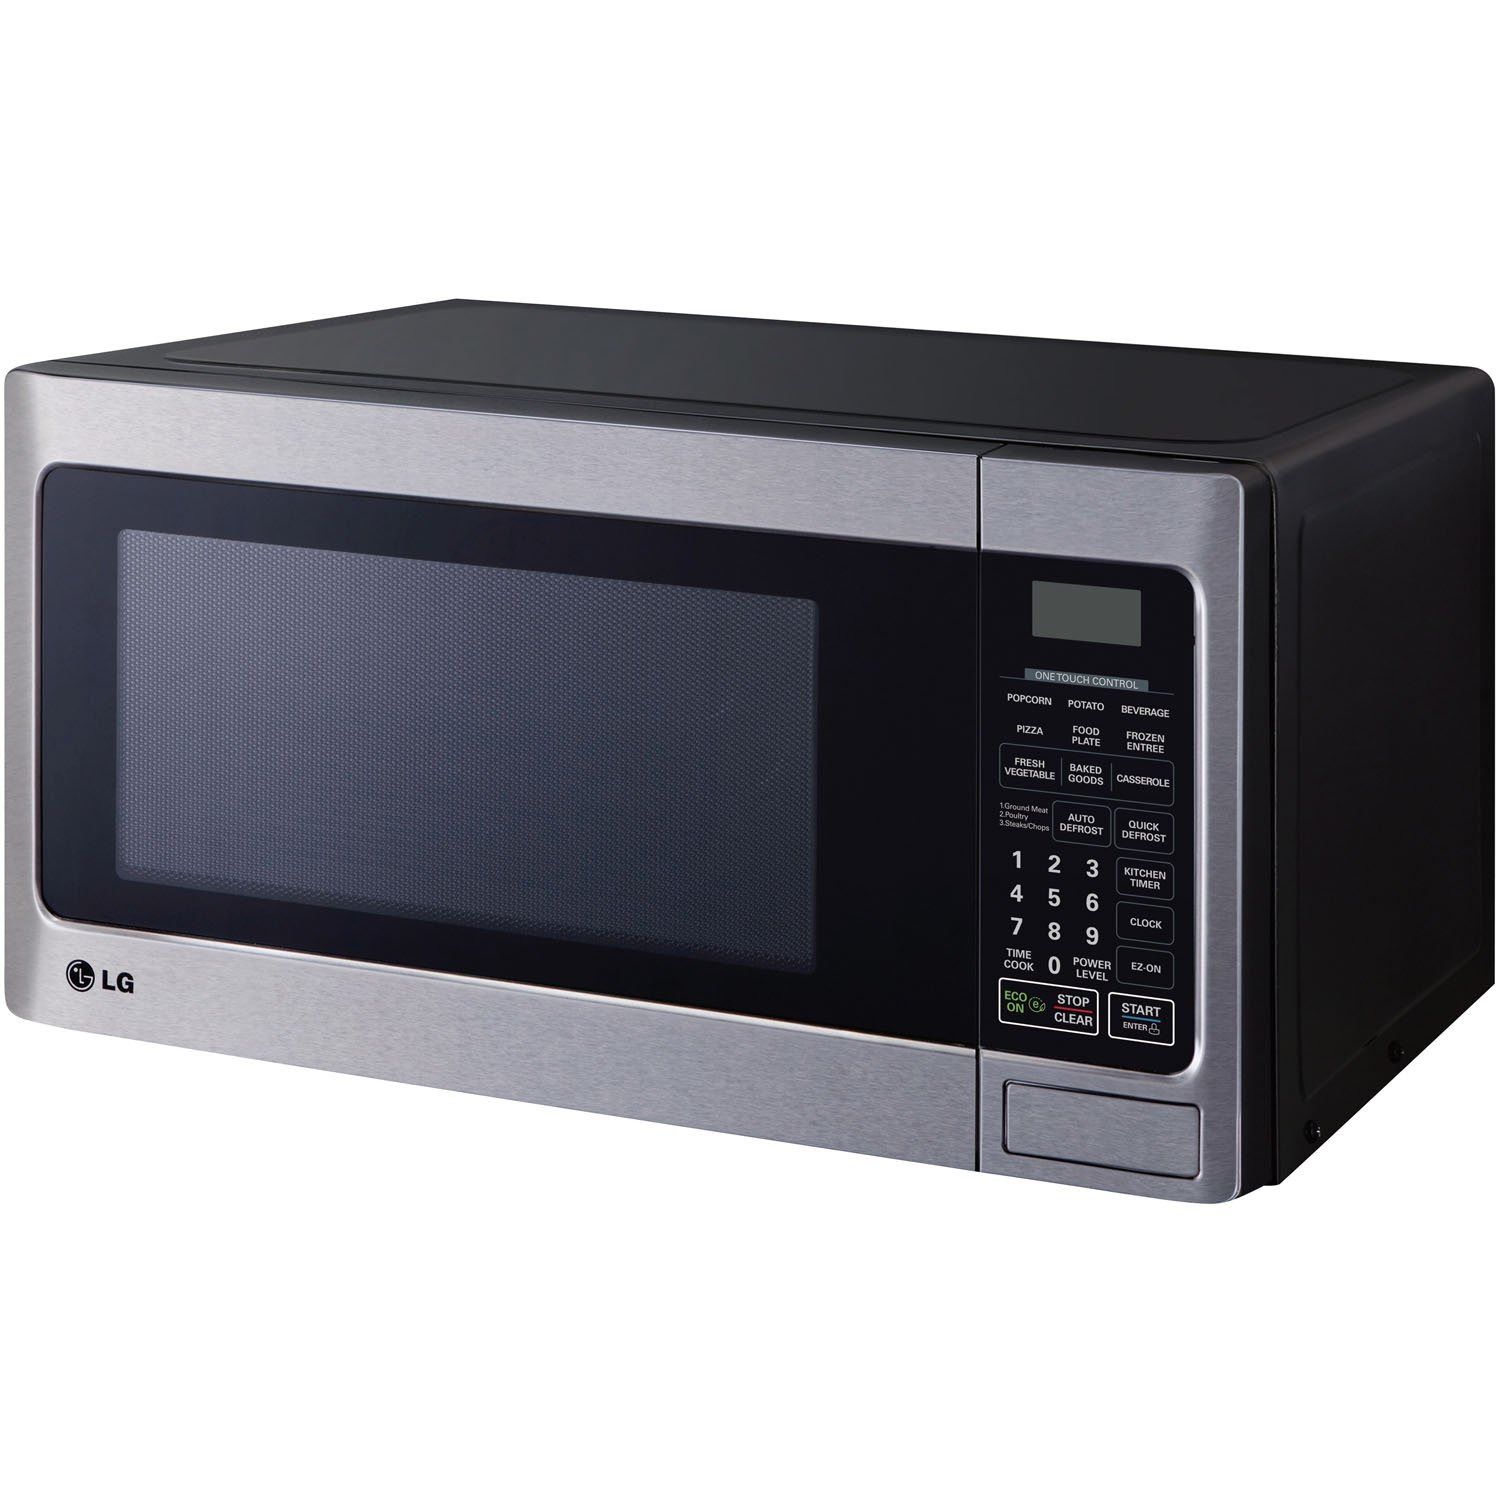 12 inch over the range microwave - Amazon Com Lg Lcs1112st Countertop Microwave Oven 1000 Watt Stainless Steel Kitchen Dining